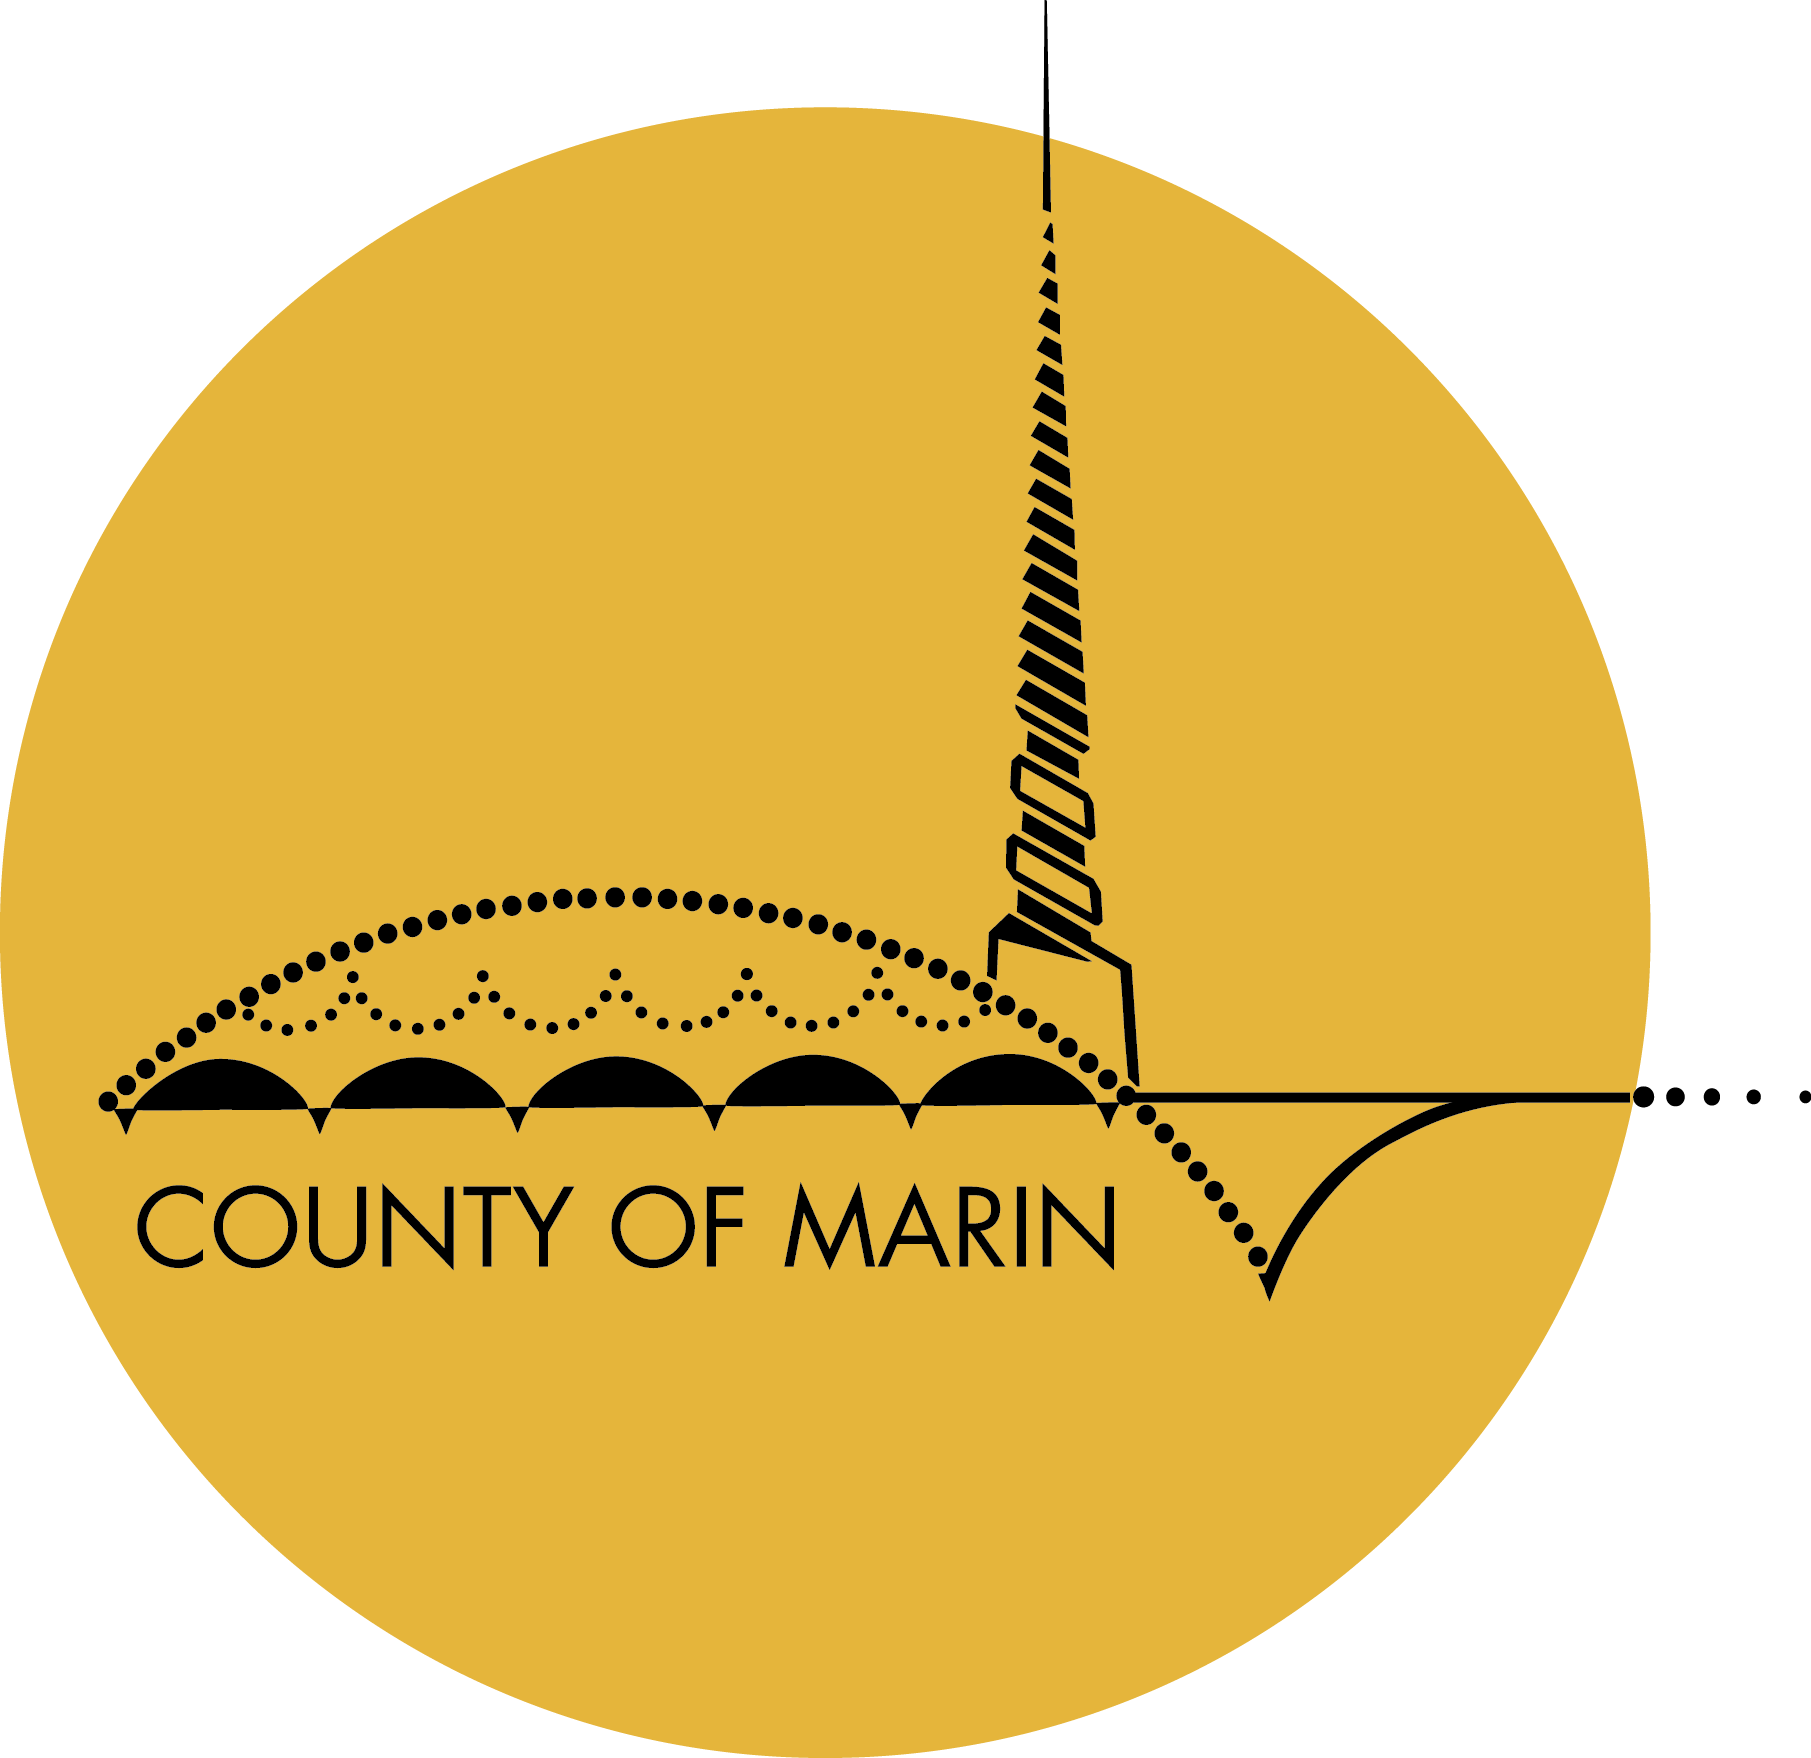 Marin_County_Seal